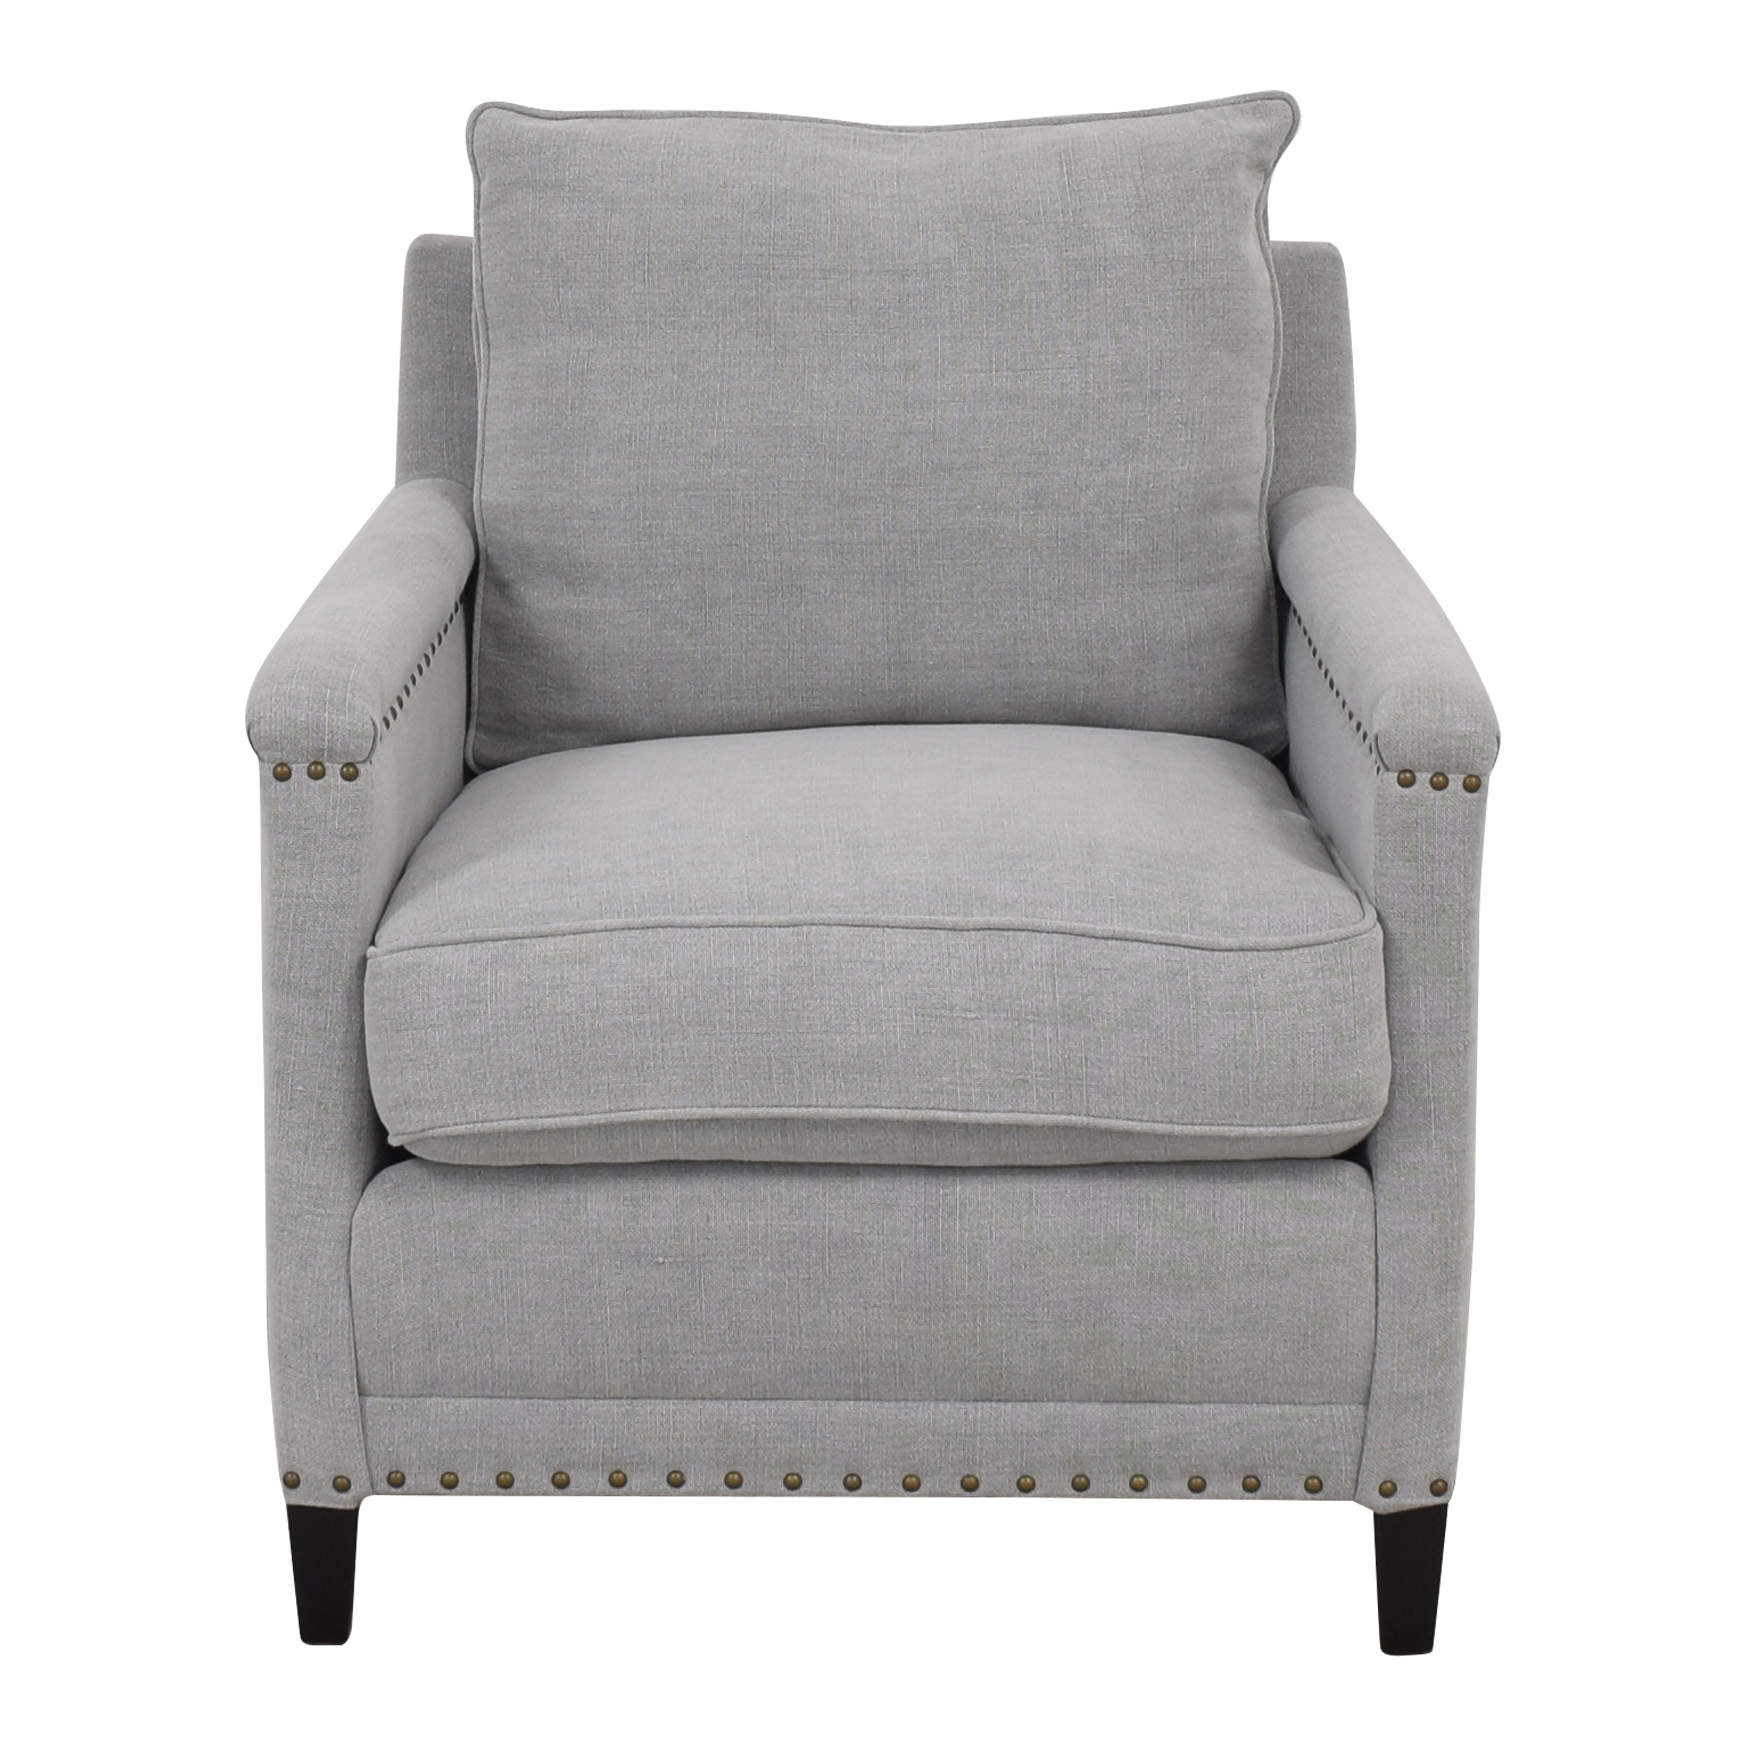 Williams Sonoma Williams Sononma Addison Chair ct